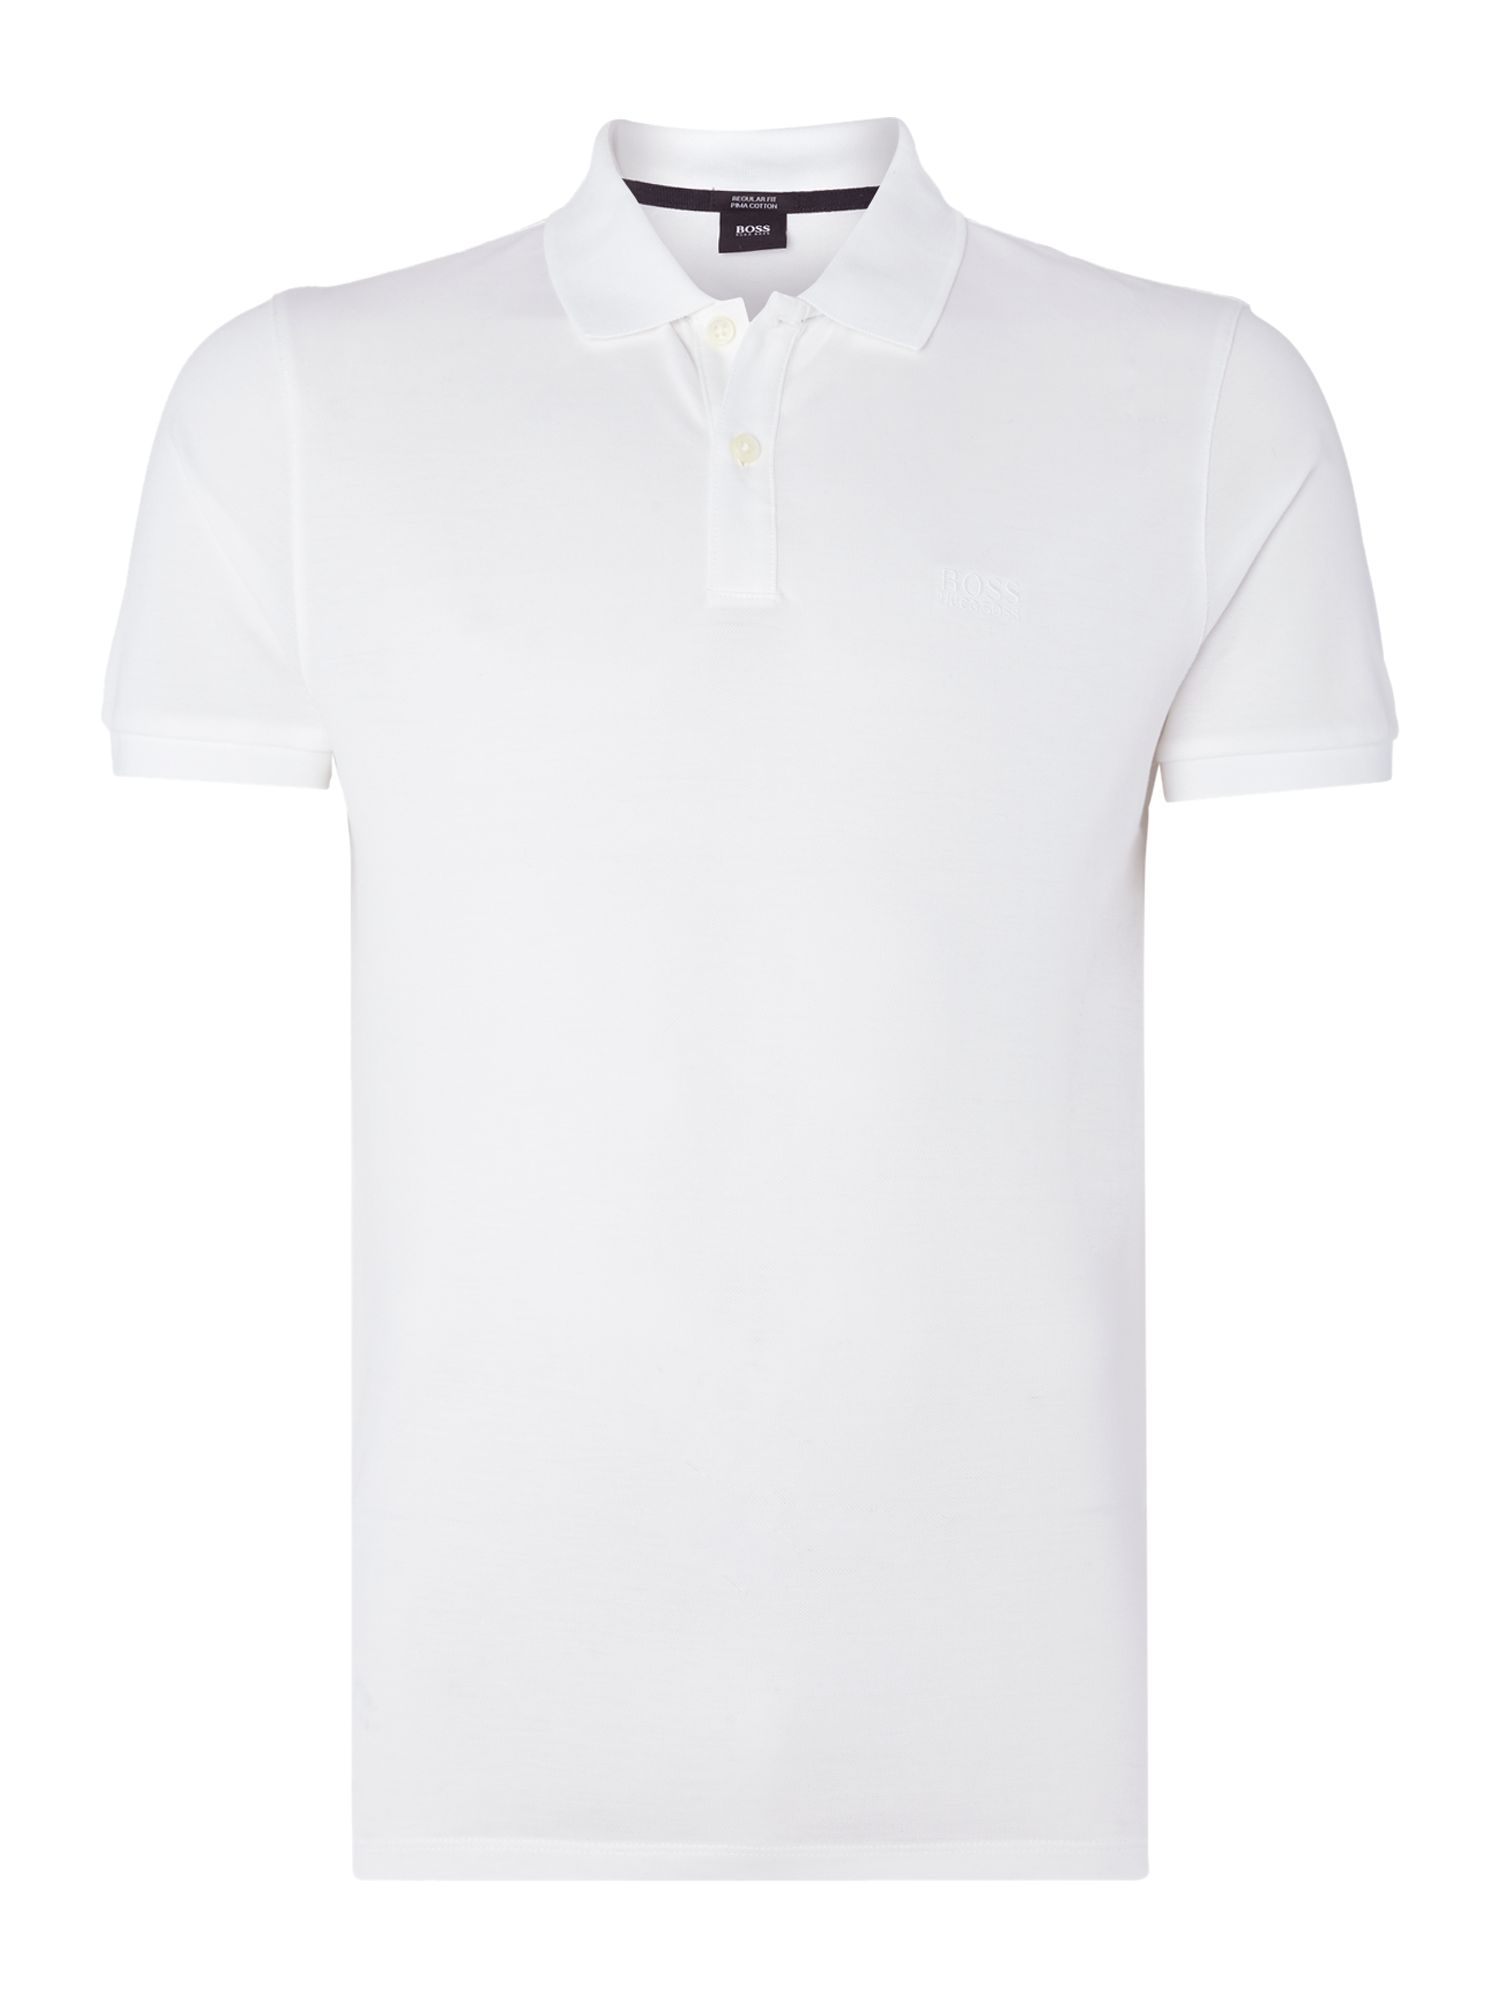 Men's Hugo Boss Pallas regular fit short sleeve logo polo shirt, White